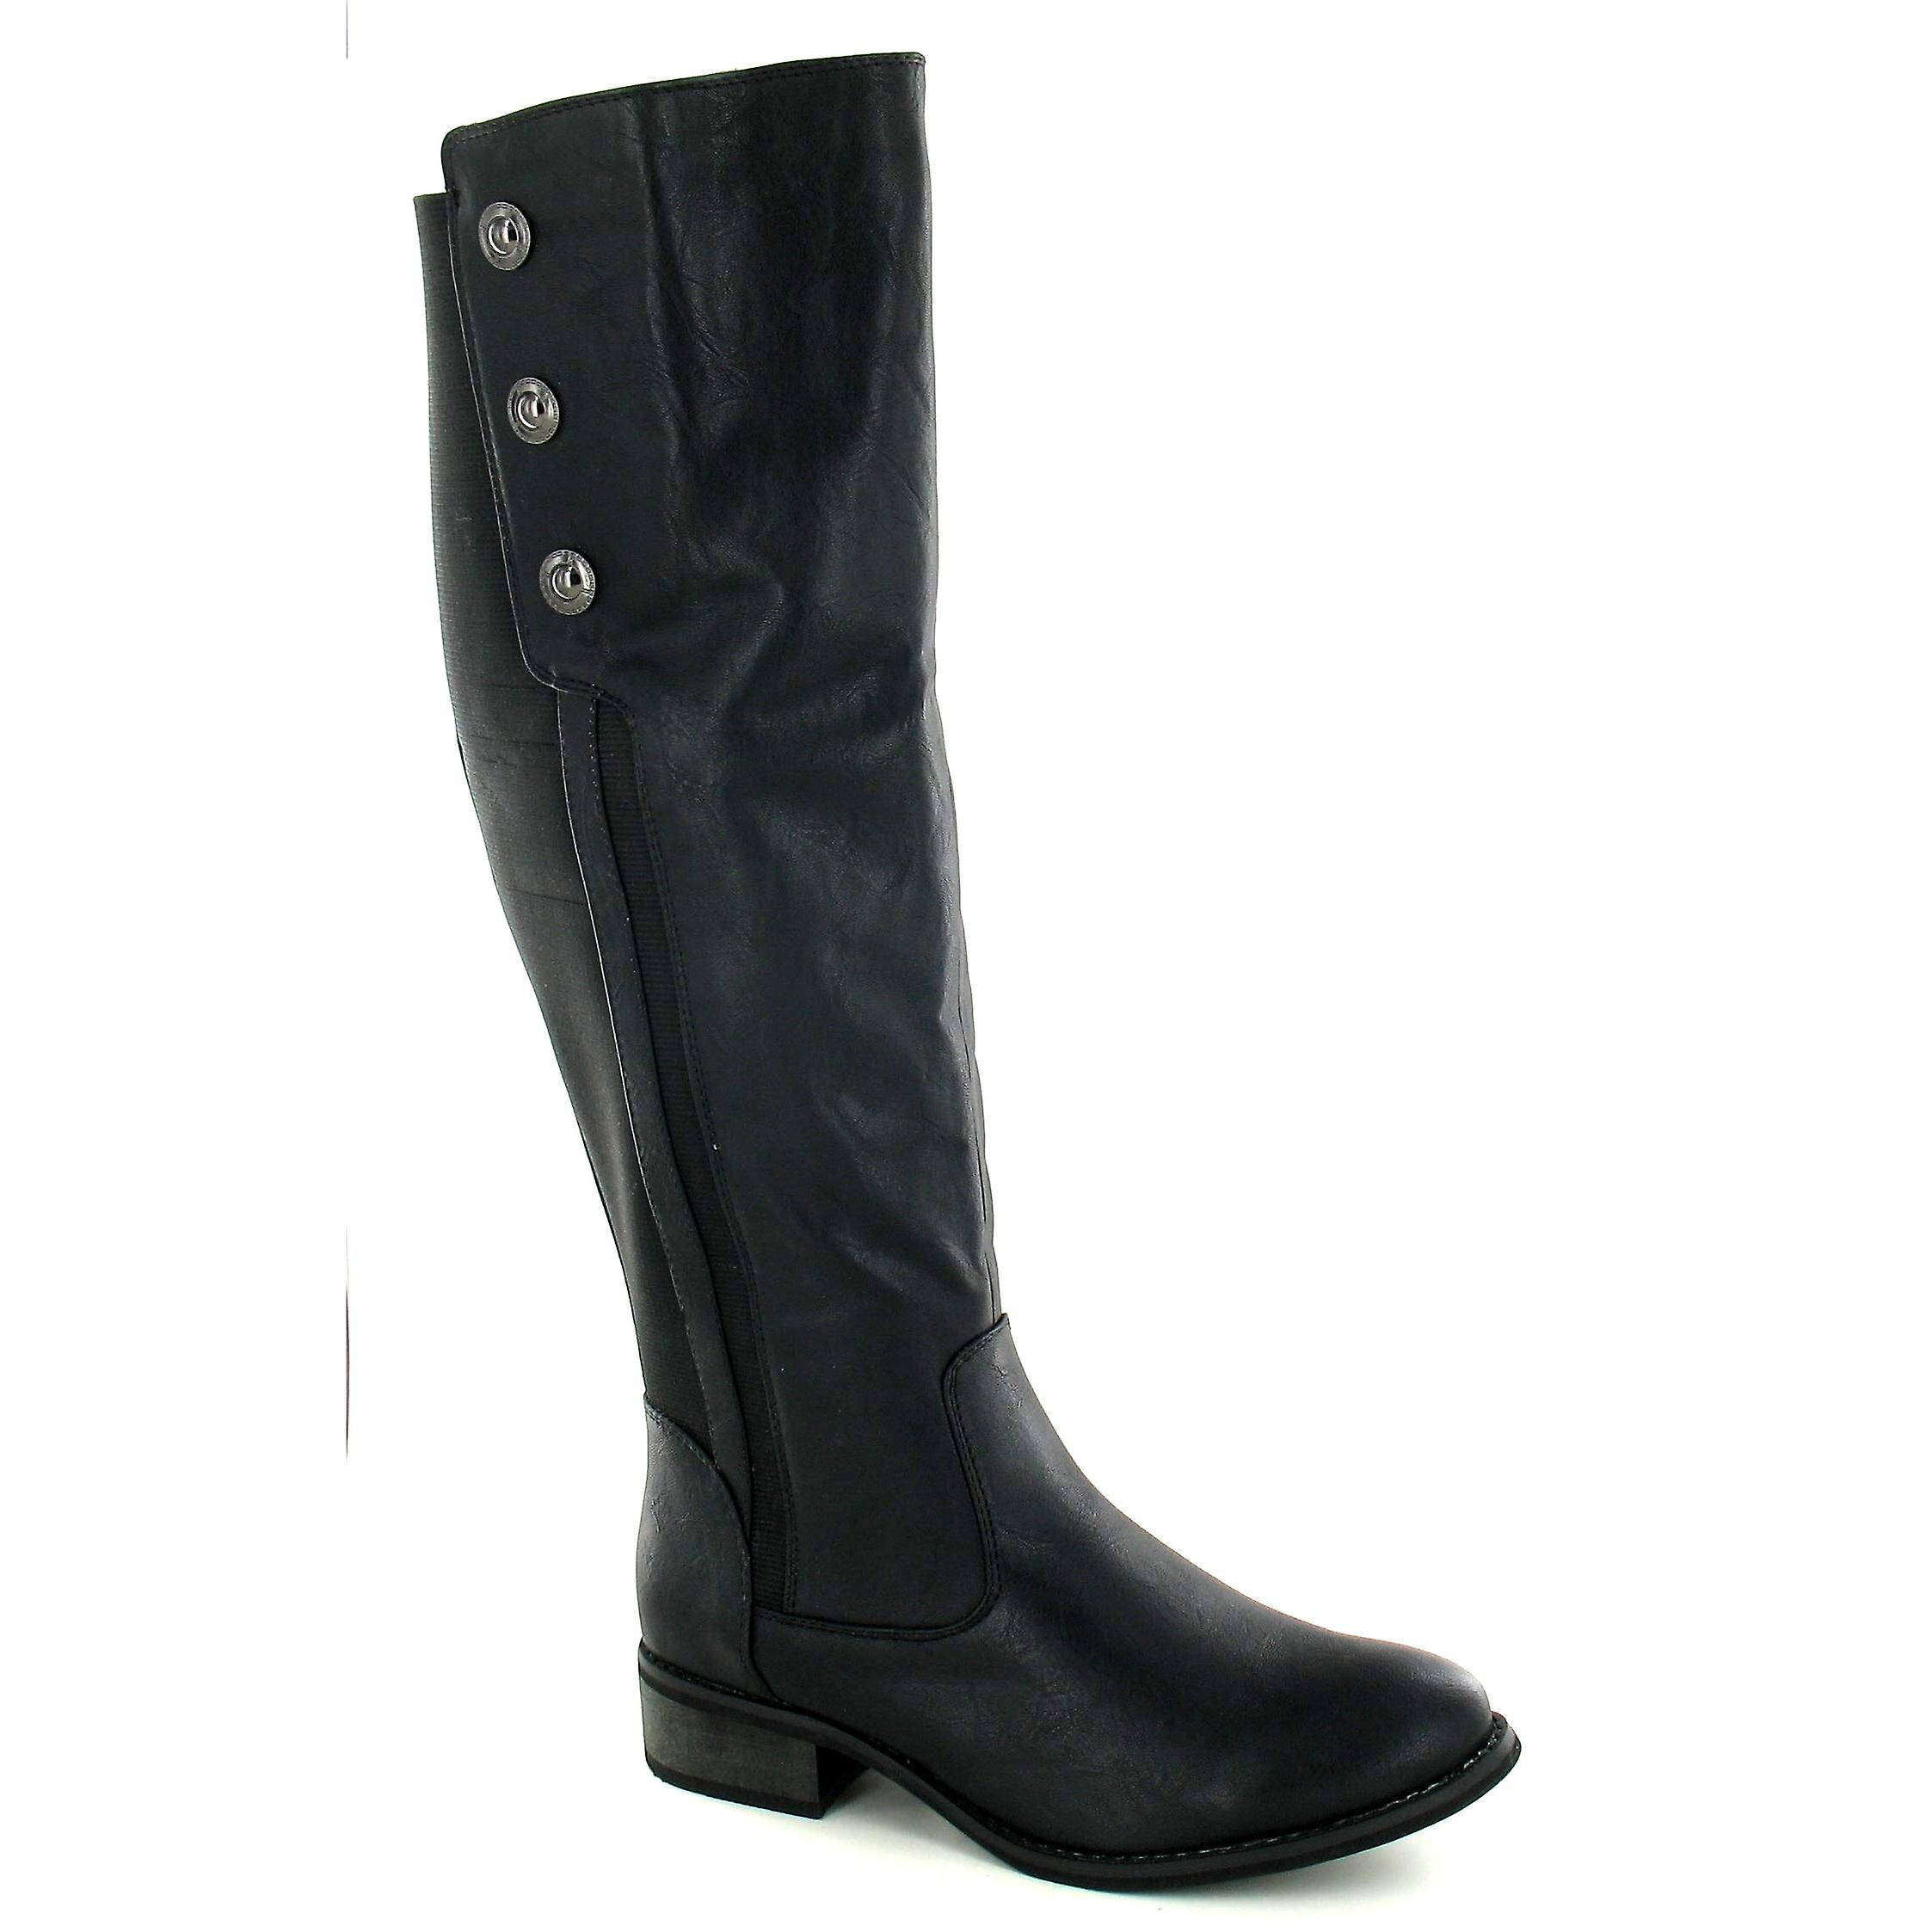 Button On Mid Heel Womens Detail Boots With High Ladies Leg Spot gZwxtIdzqx